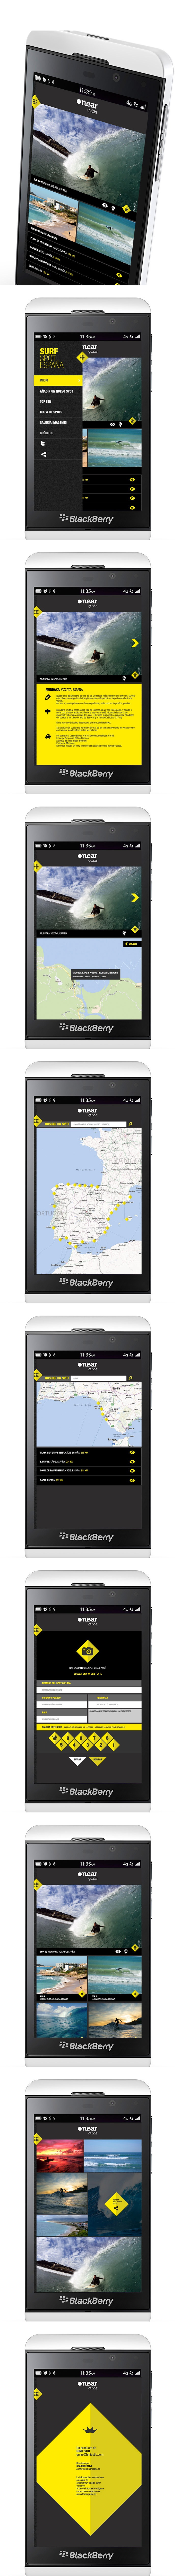 Blackberry Z10 Surf app by nearguide (http://www.nearguide.es/)